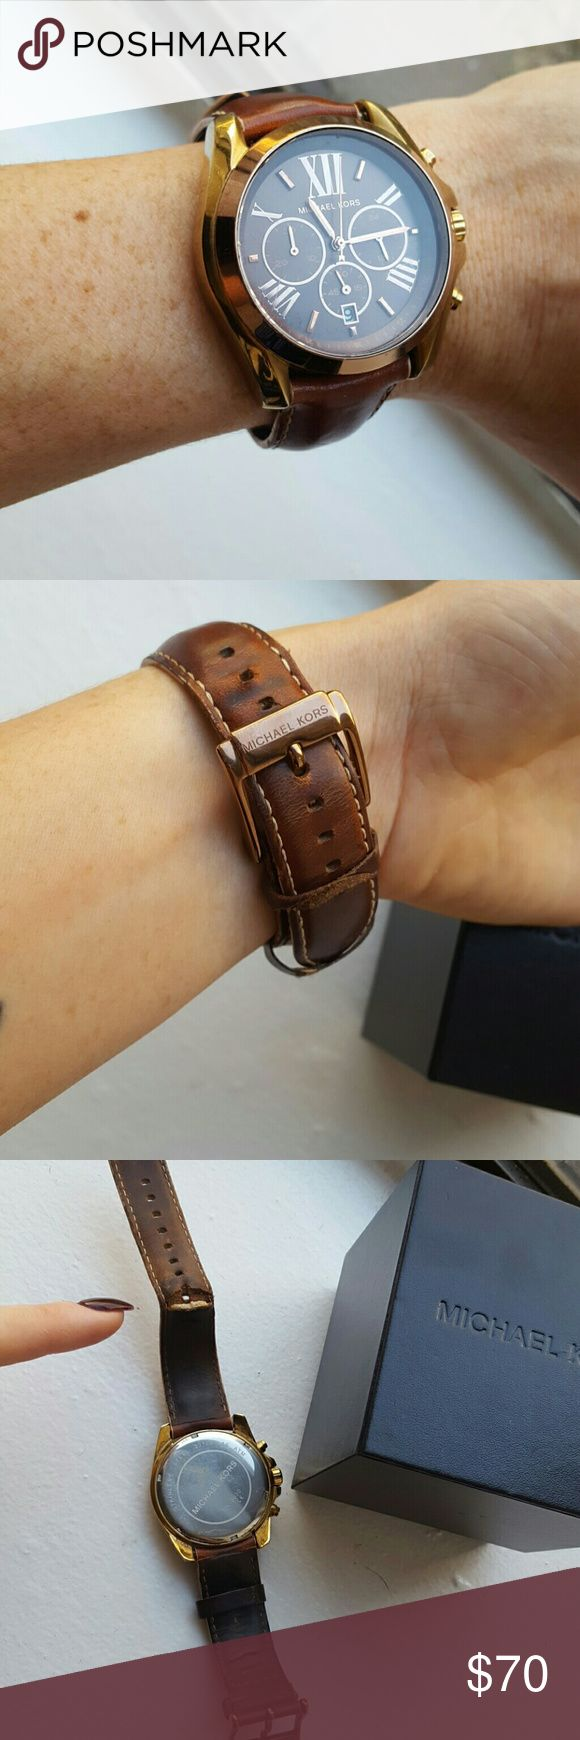 Micheal Kors watch Oversized female watch. Comes with box and instructions. Band has bend in from wearing but cannot see it when on wrist. Some scratching on face and hardware from wear. Get compliments everytime I wear this. Just dont really wear brown stuff anymore.  Battery works and has date. Never used  the other features but  u can figure out with instructions book. Definately worn but gorgeous. Eventually will need to get new wrist band. Michael Kors Accessories Watches